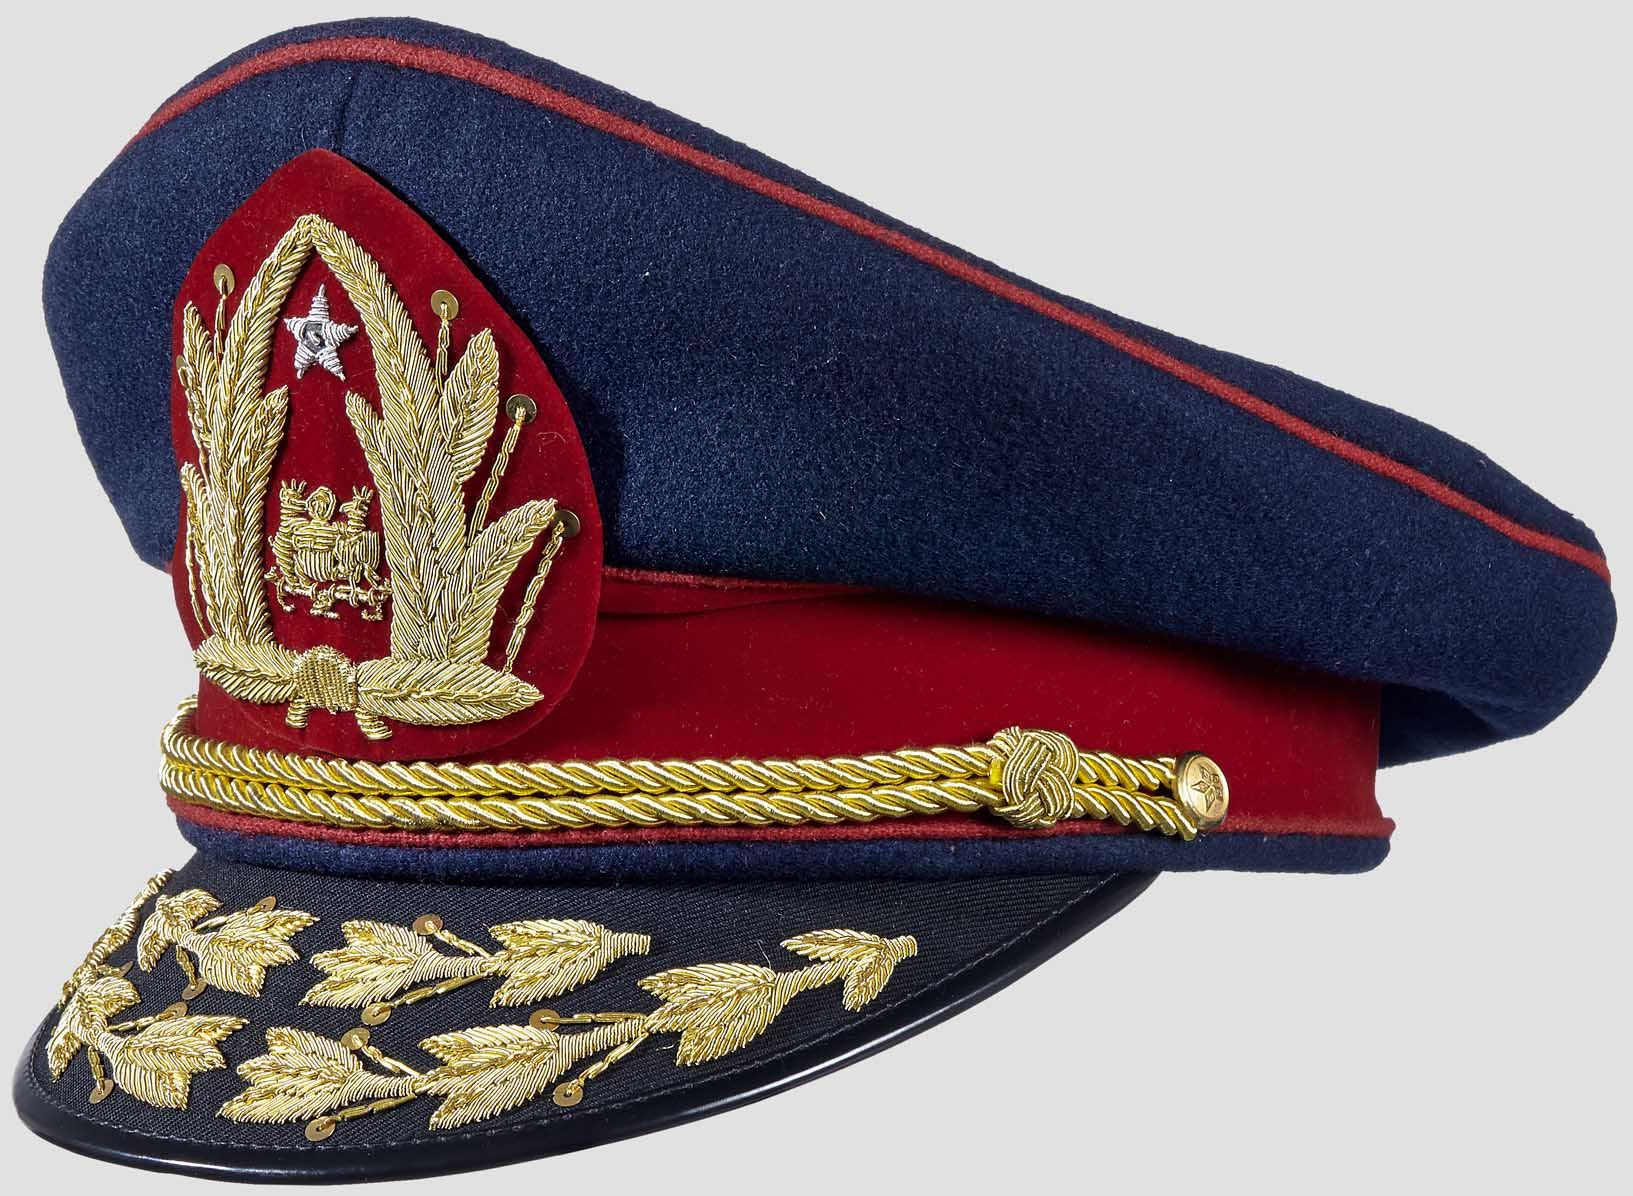 0155193cacdc4 Gorra de etiqueta del comandante en jefe del Ejército de Chile   Chilean  Army commander-in-chief s blue dress uniform visor cap.